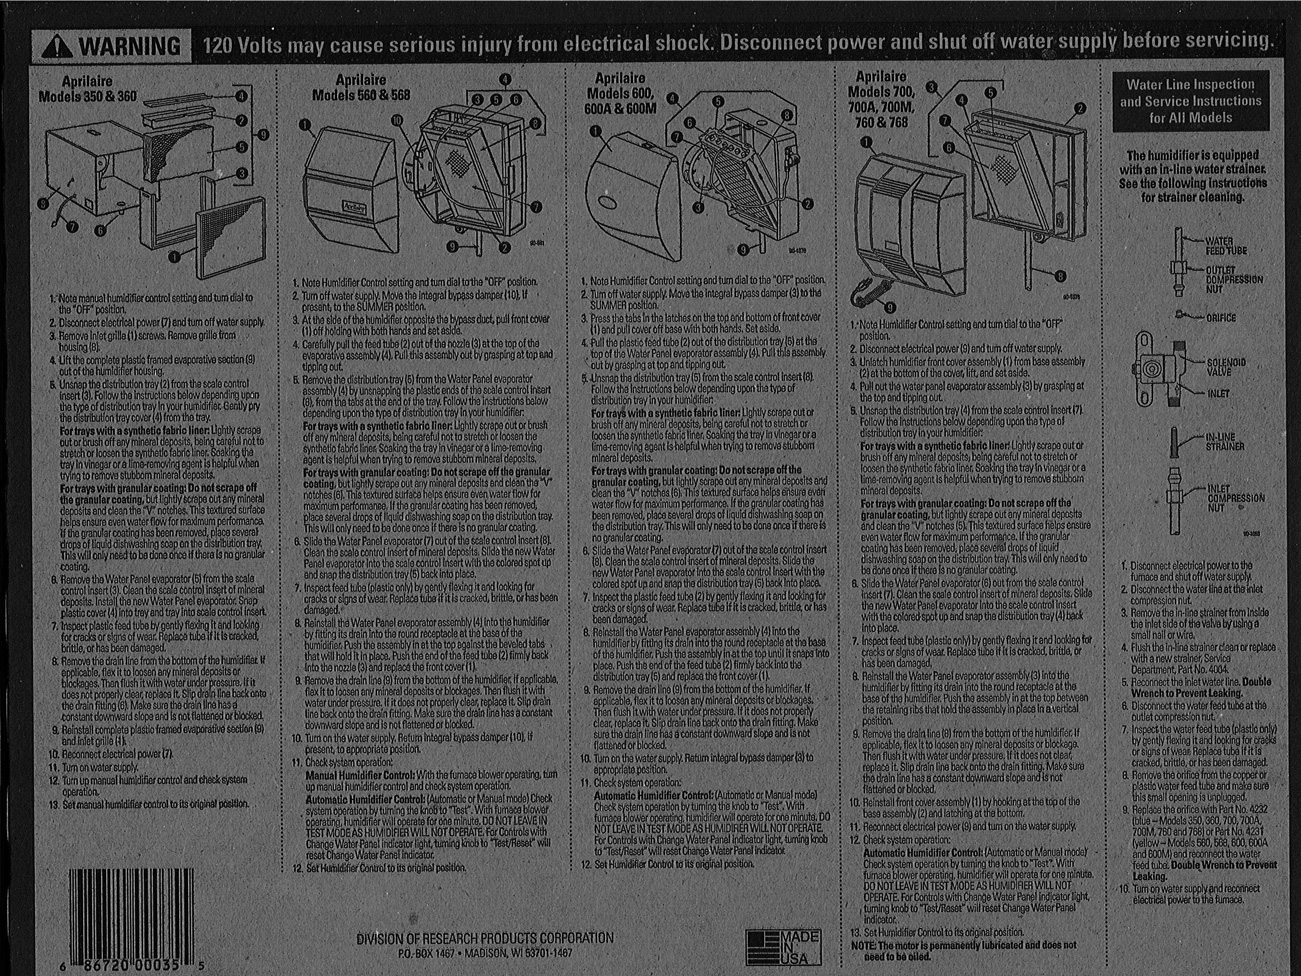 How To Change Your Water Panel Aprilaire Humidifier 760 Wiring Diagram 35